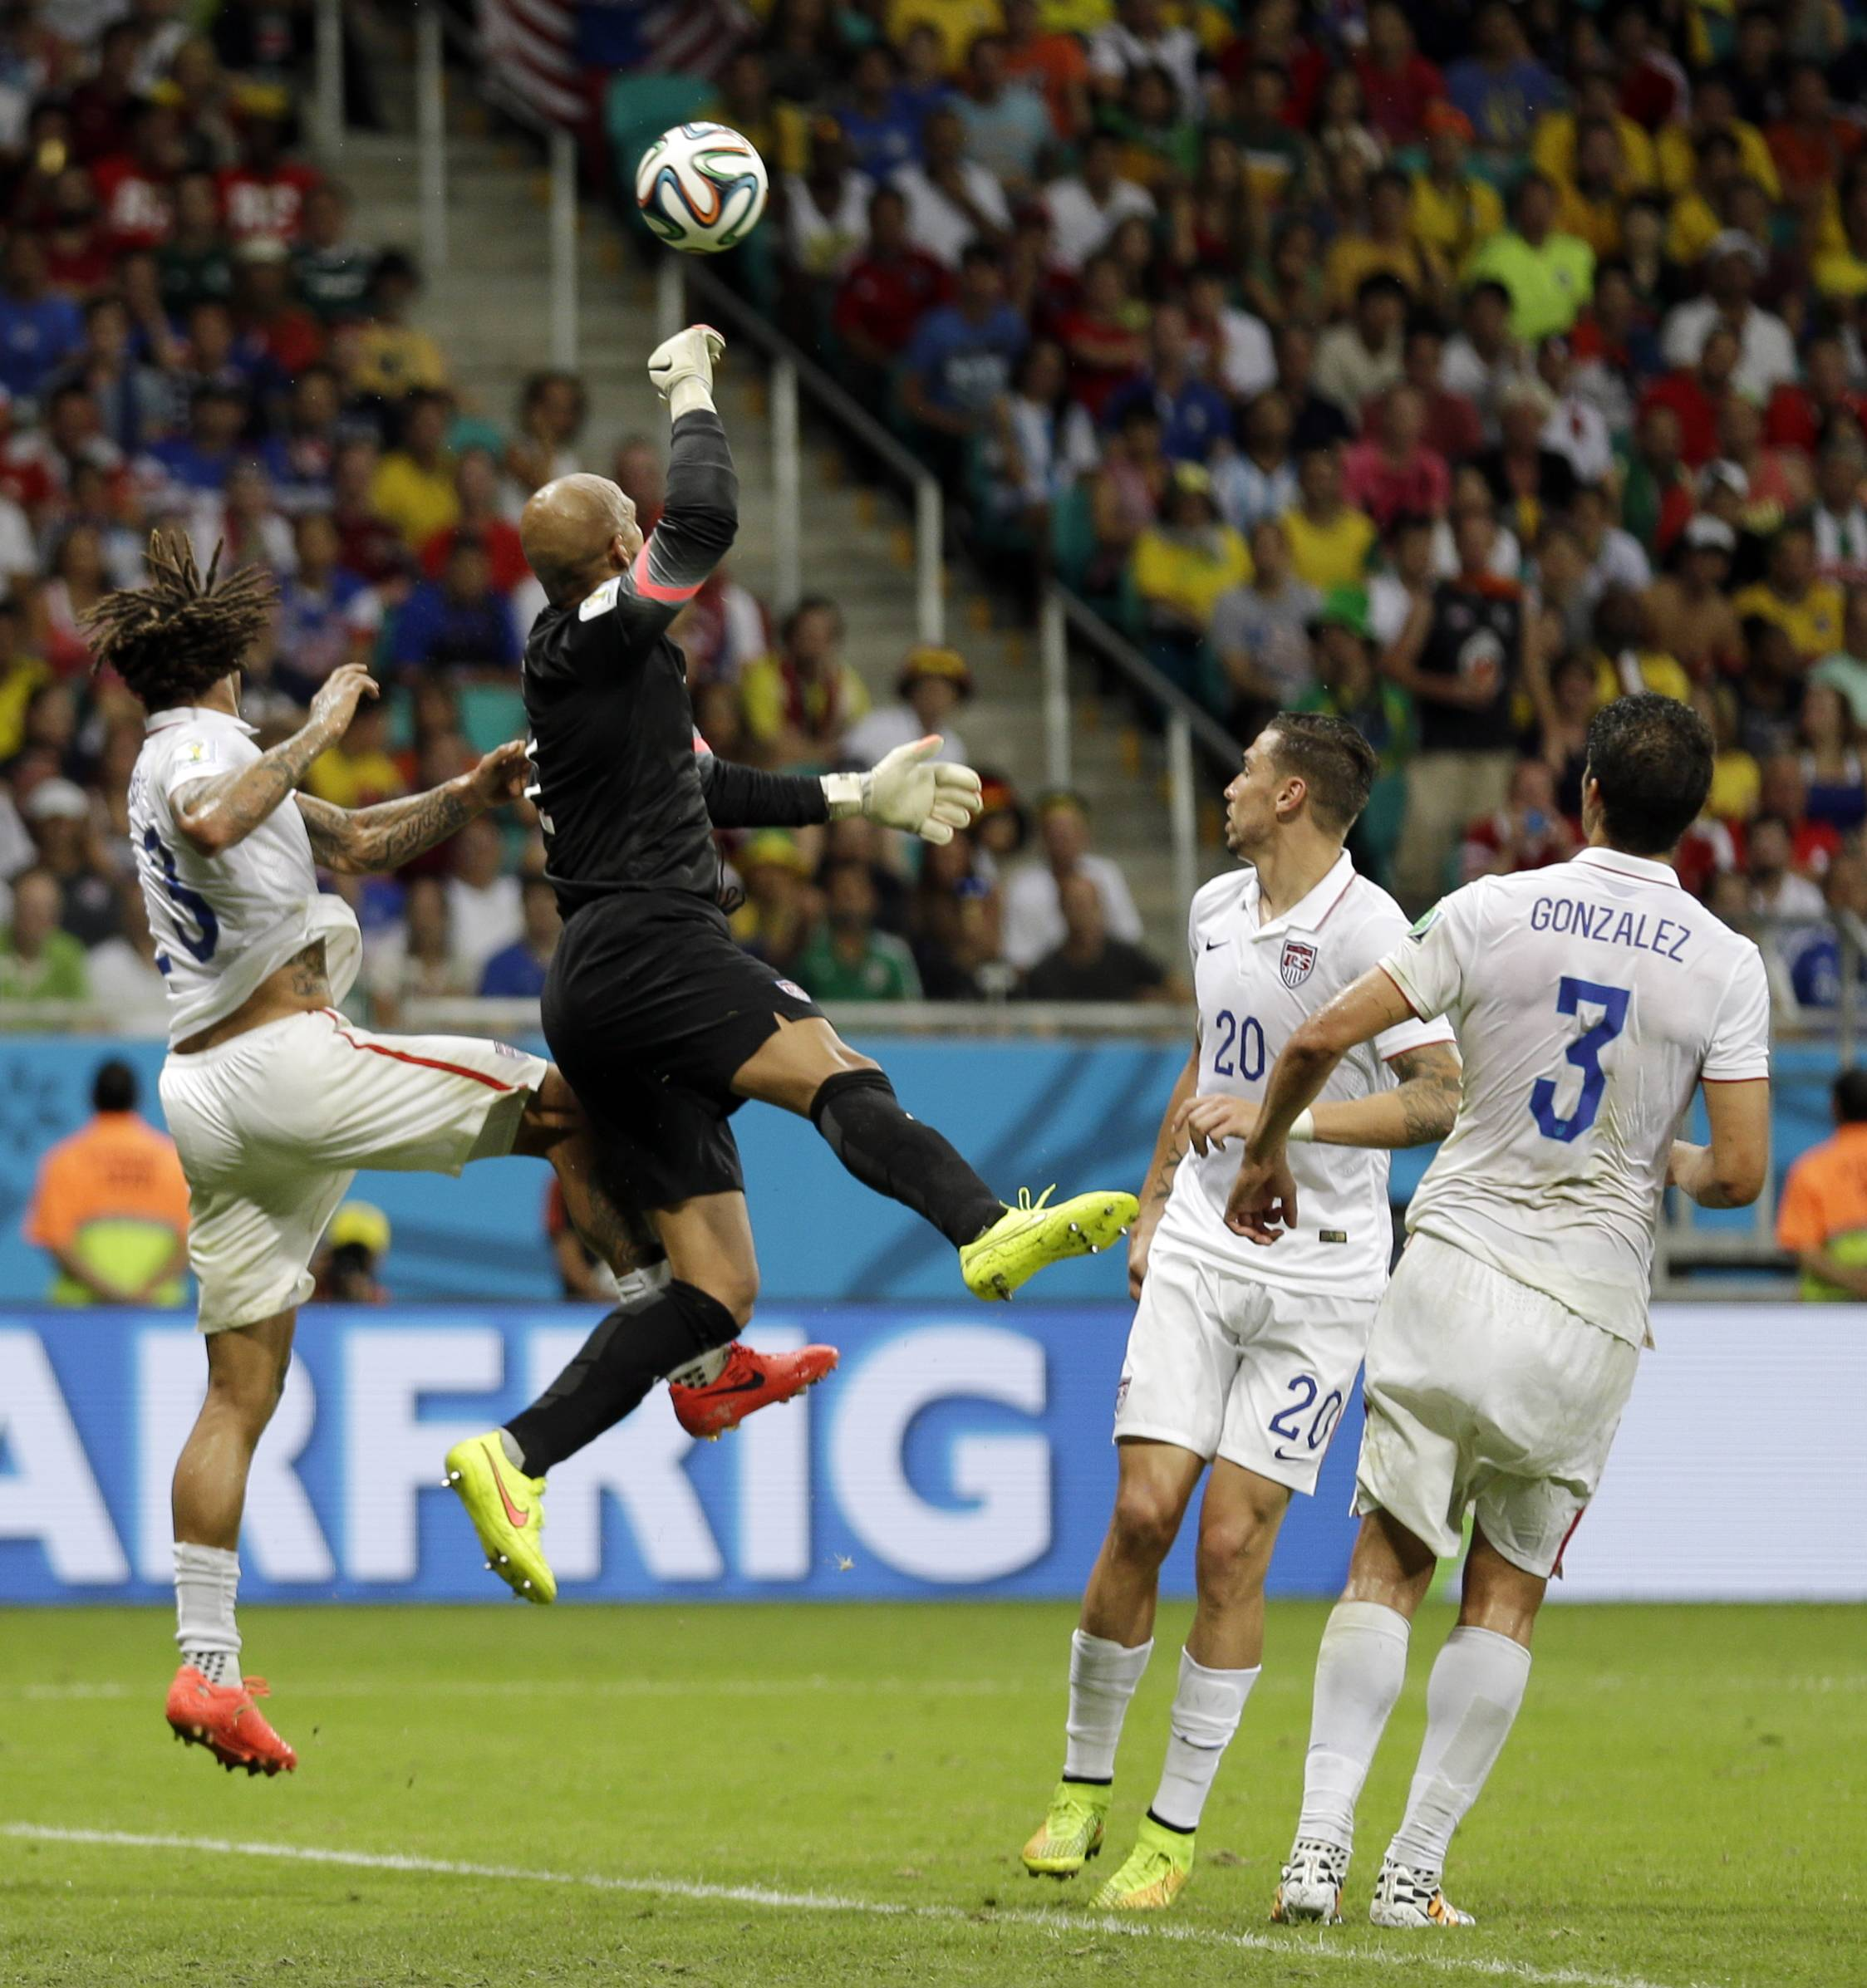 U.S. holds Belgium off until extra time, loses 2-1